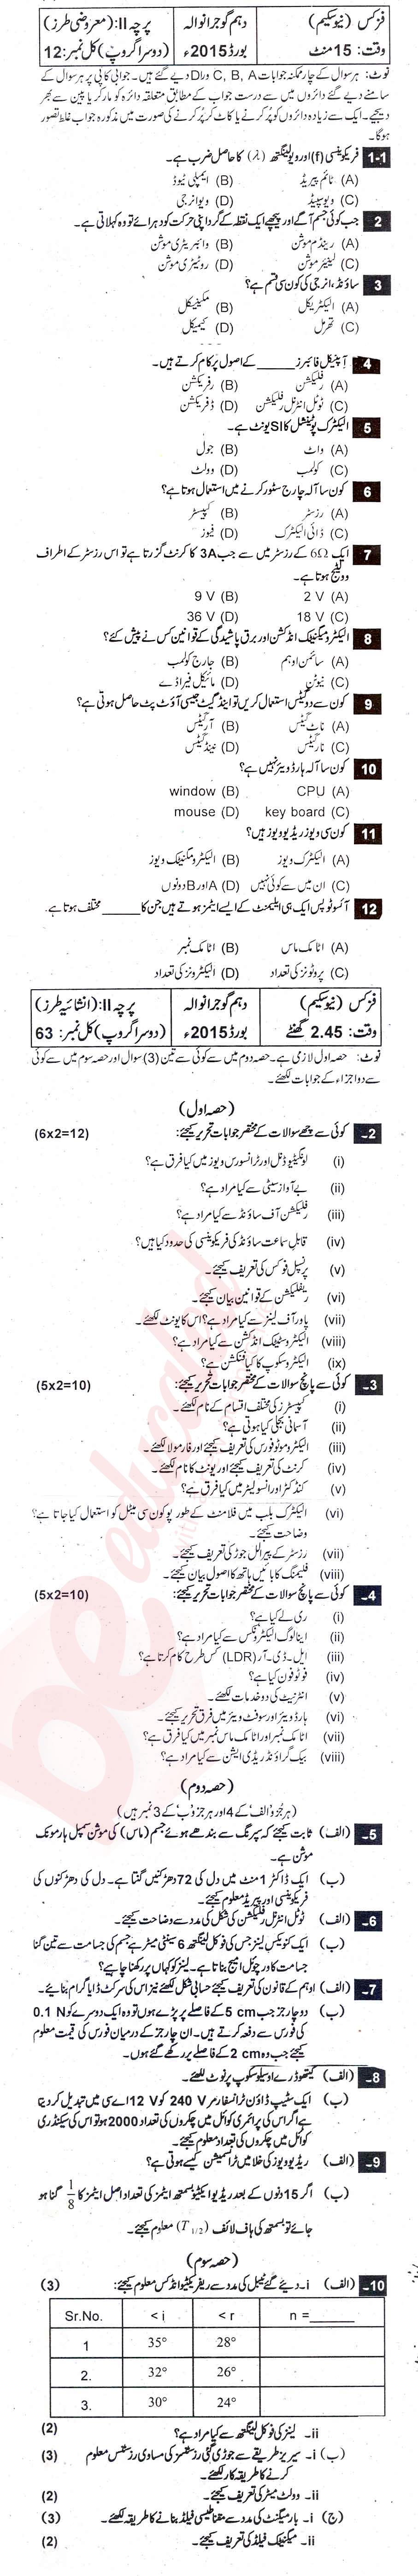 urdu essays list Important urdu essays for 10th class students is also available on this page with essay writing tips, top 10 urdu essay essay introduction for metric students.